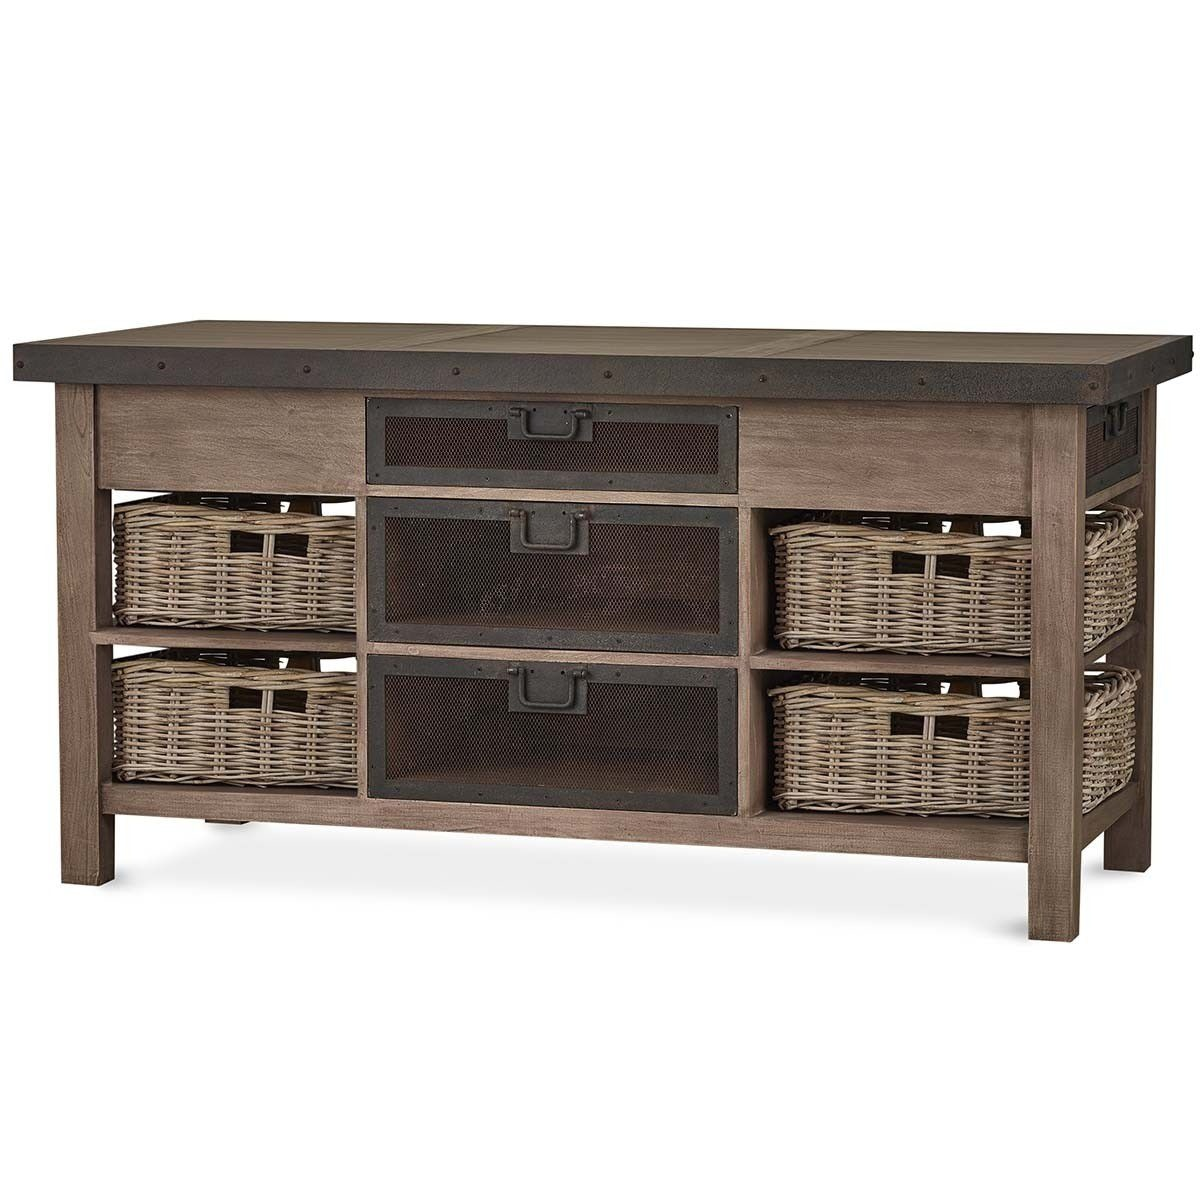 Bramble Harrington Kitchen Island With Baskets 26983